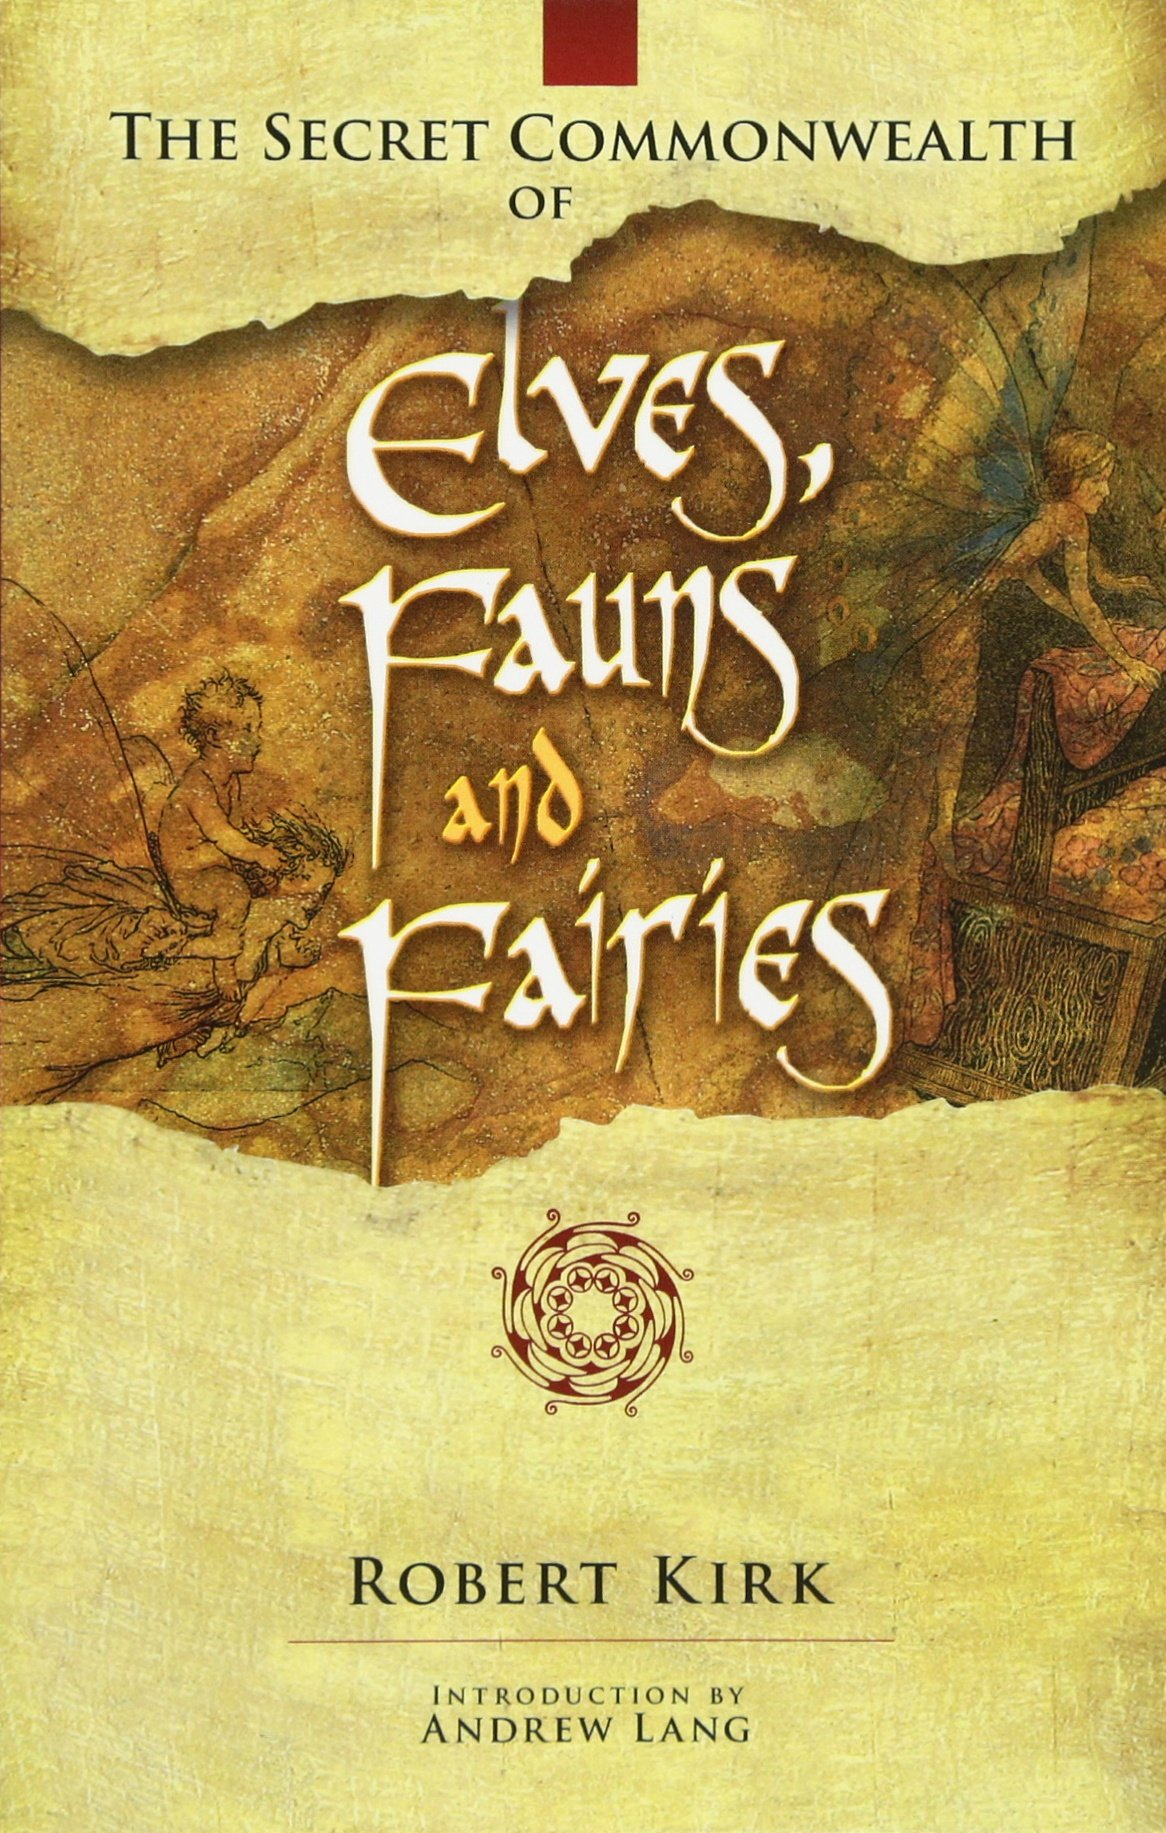 Amazon.com: The Secret Commonwealth of Elves, Fauns and Fairies ...